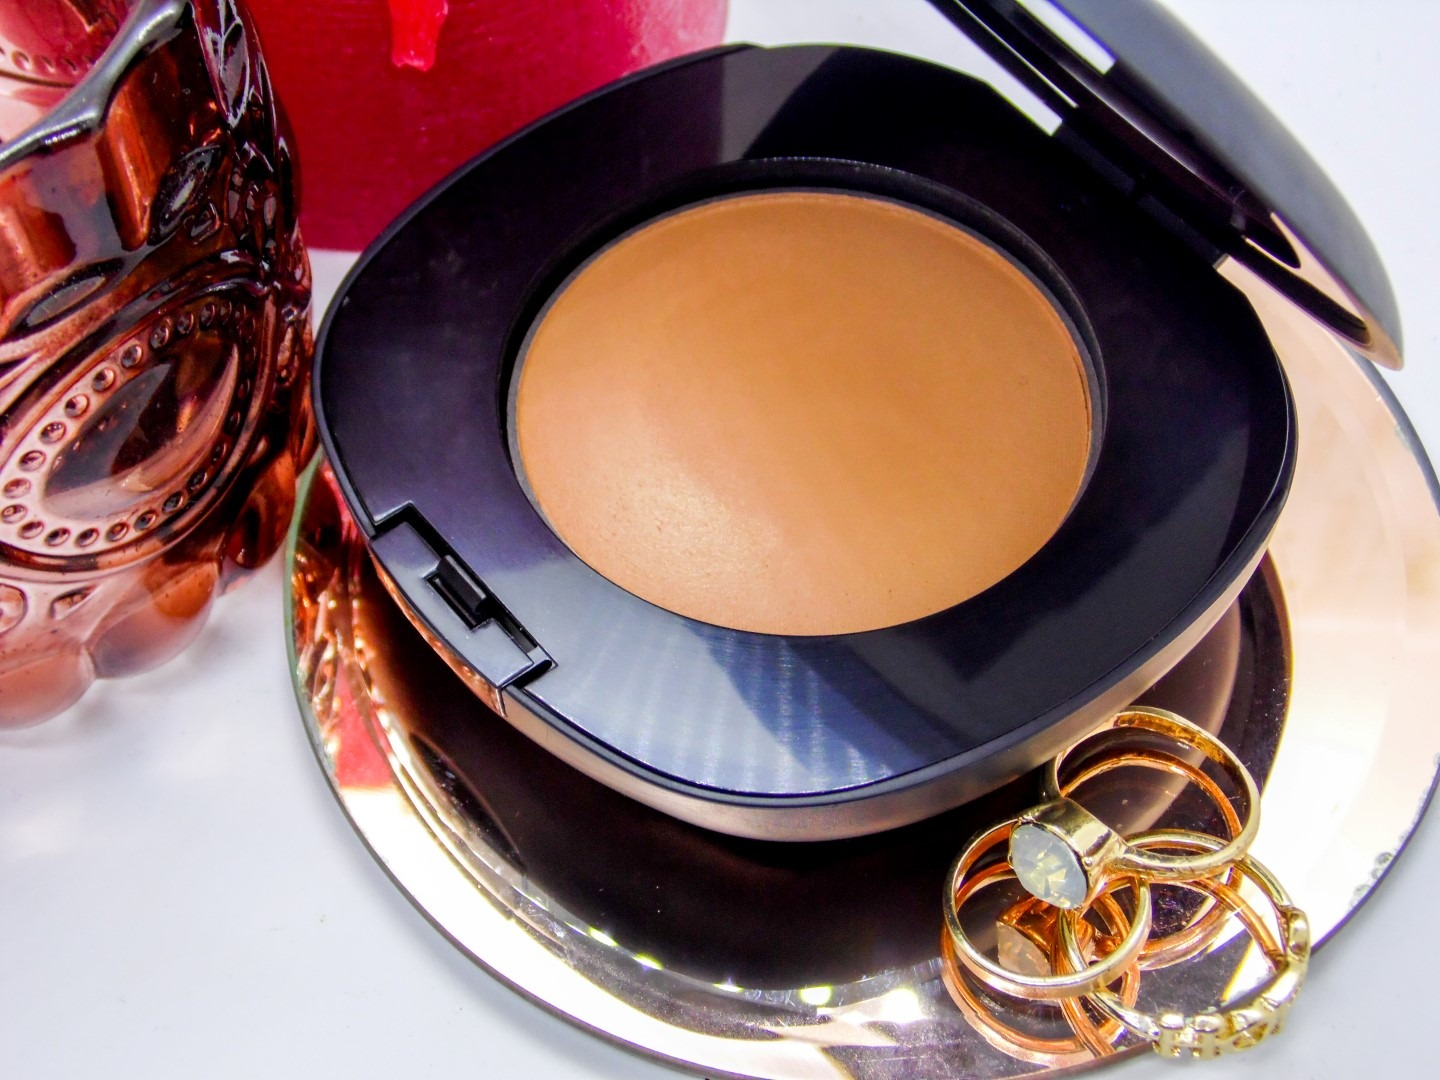 Elizabeth Arden Flawless Finish Everyday Perfection Bouncy Makeup - By Megan Kelly